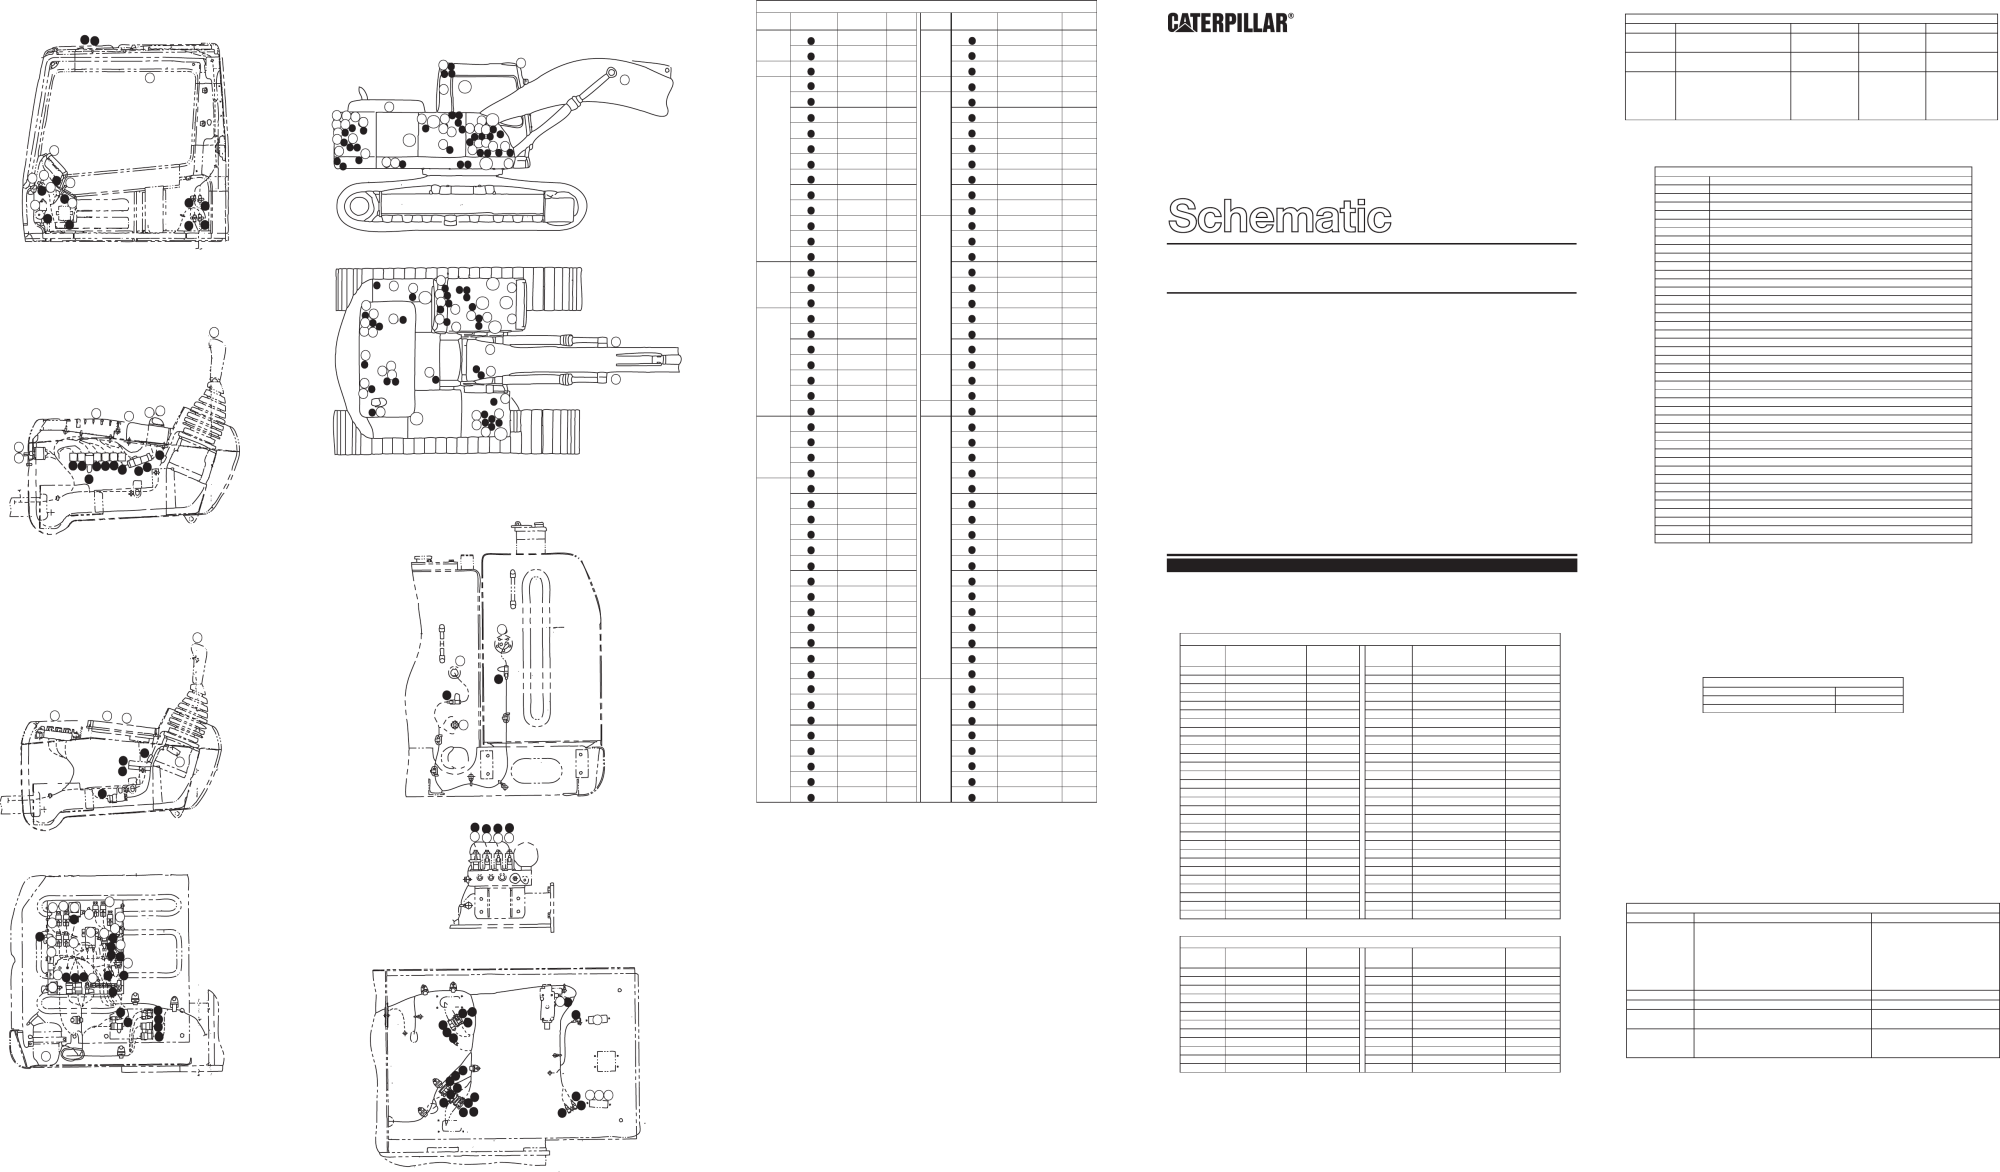 hight resolution of 320b u excavator electrical schematic akashi used in service manual wiring diagram cat 320l